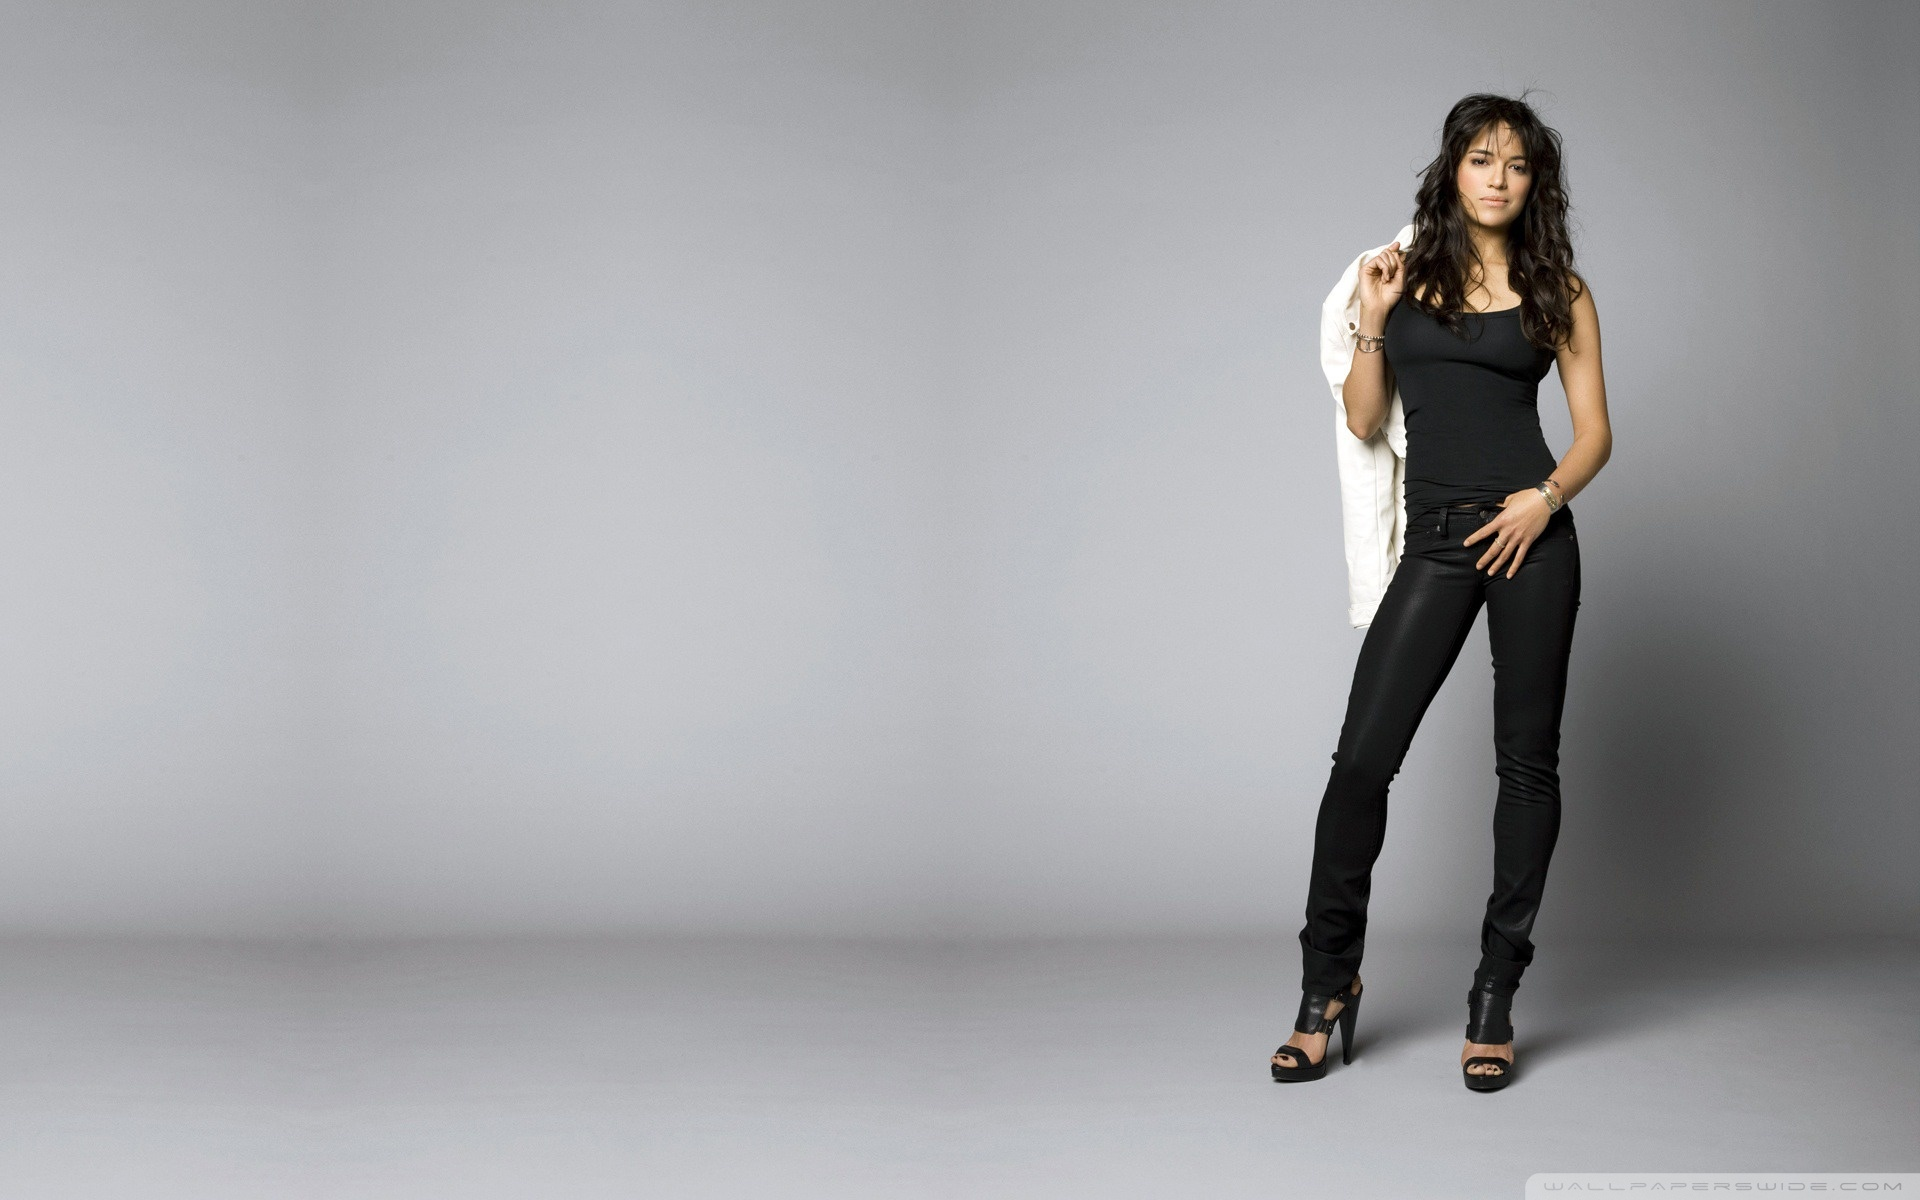 1920x1200 - Michelle Rodriguez Wallpapers 5